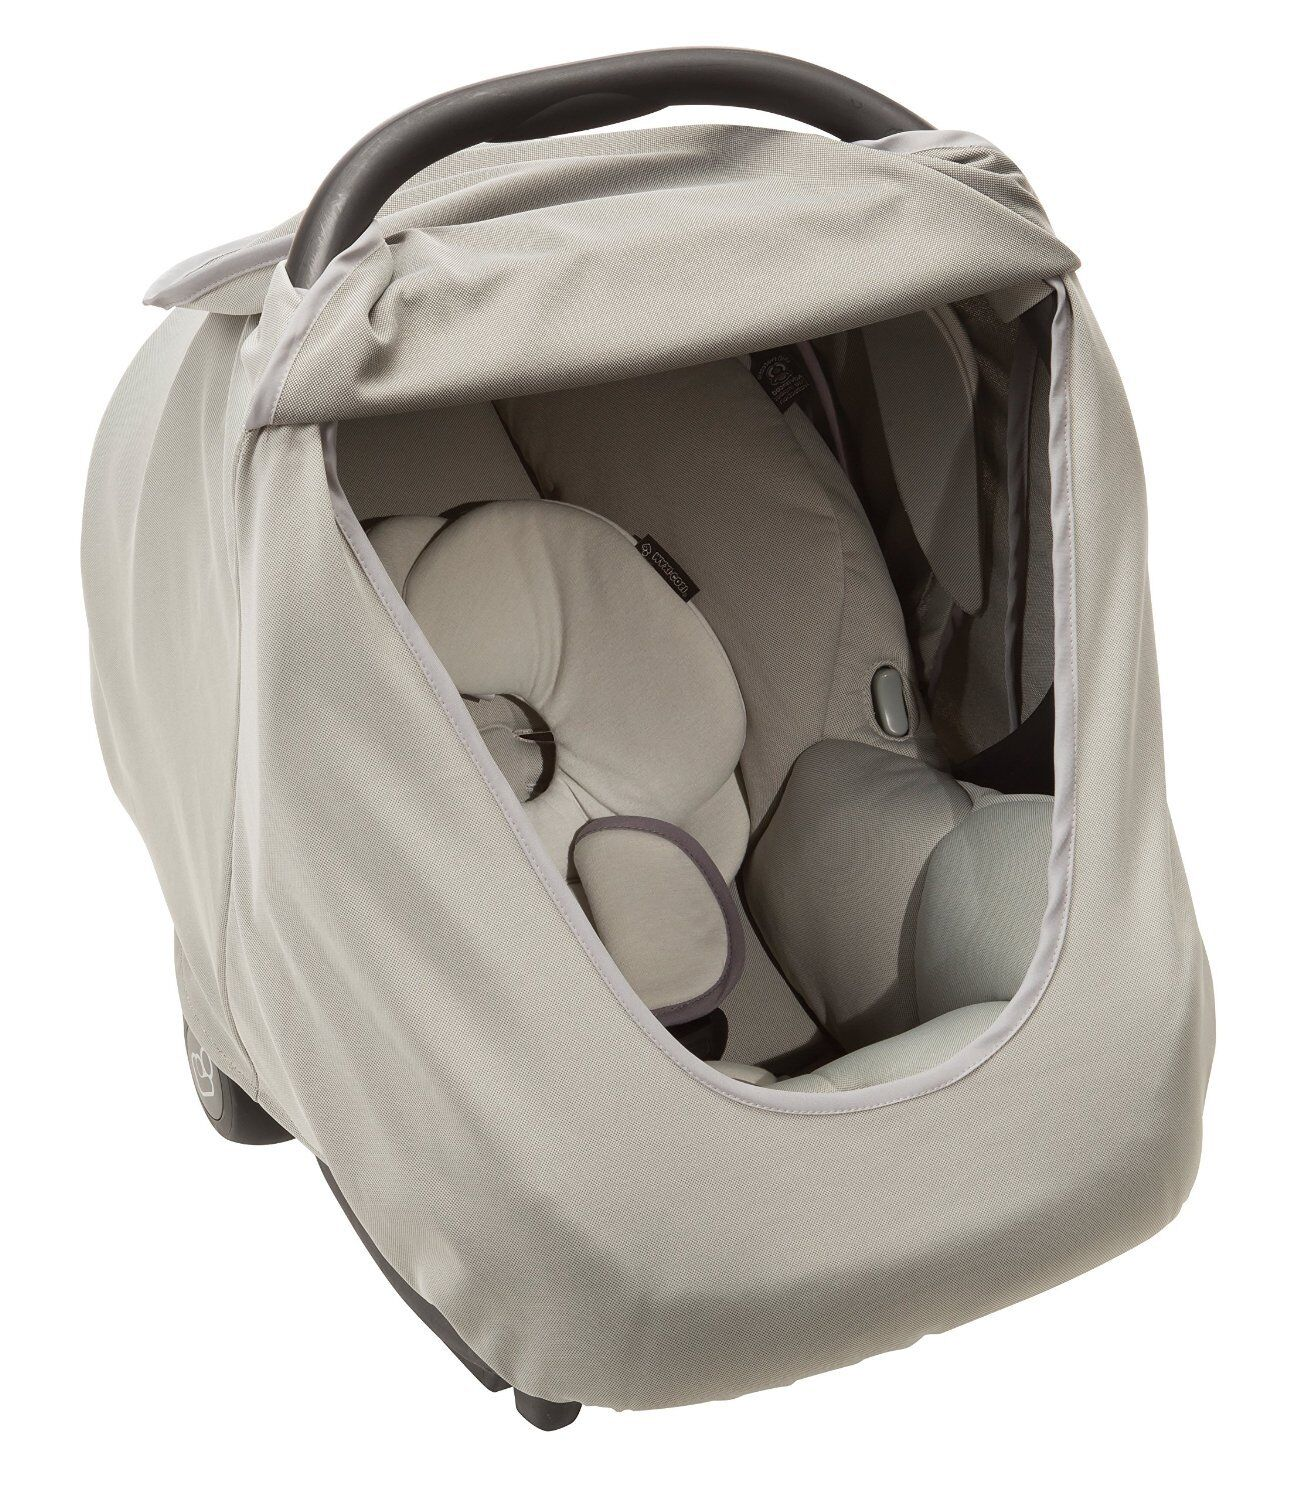 maxi cosi mico infant car seat cover grey brand new free shipping. Black Bedroom Furniture Sets. Home Design Ideas